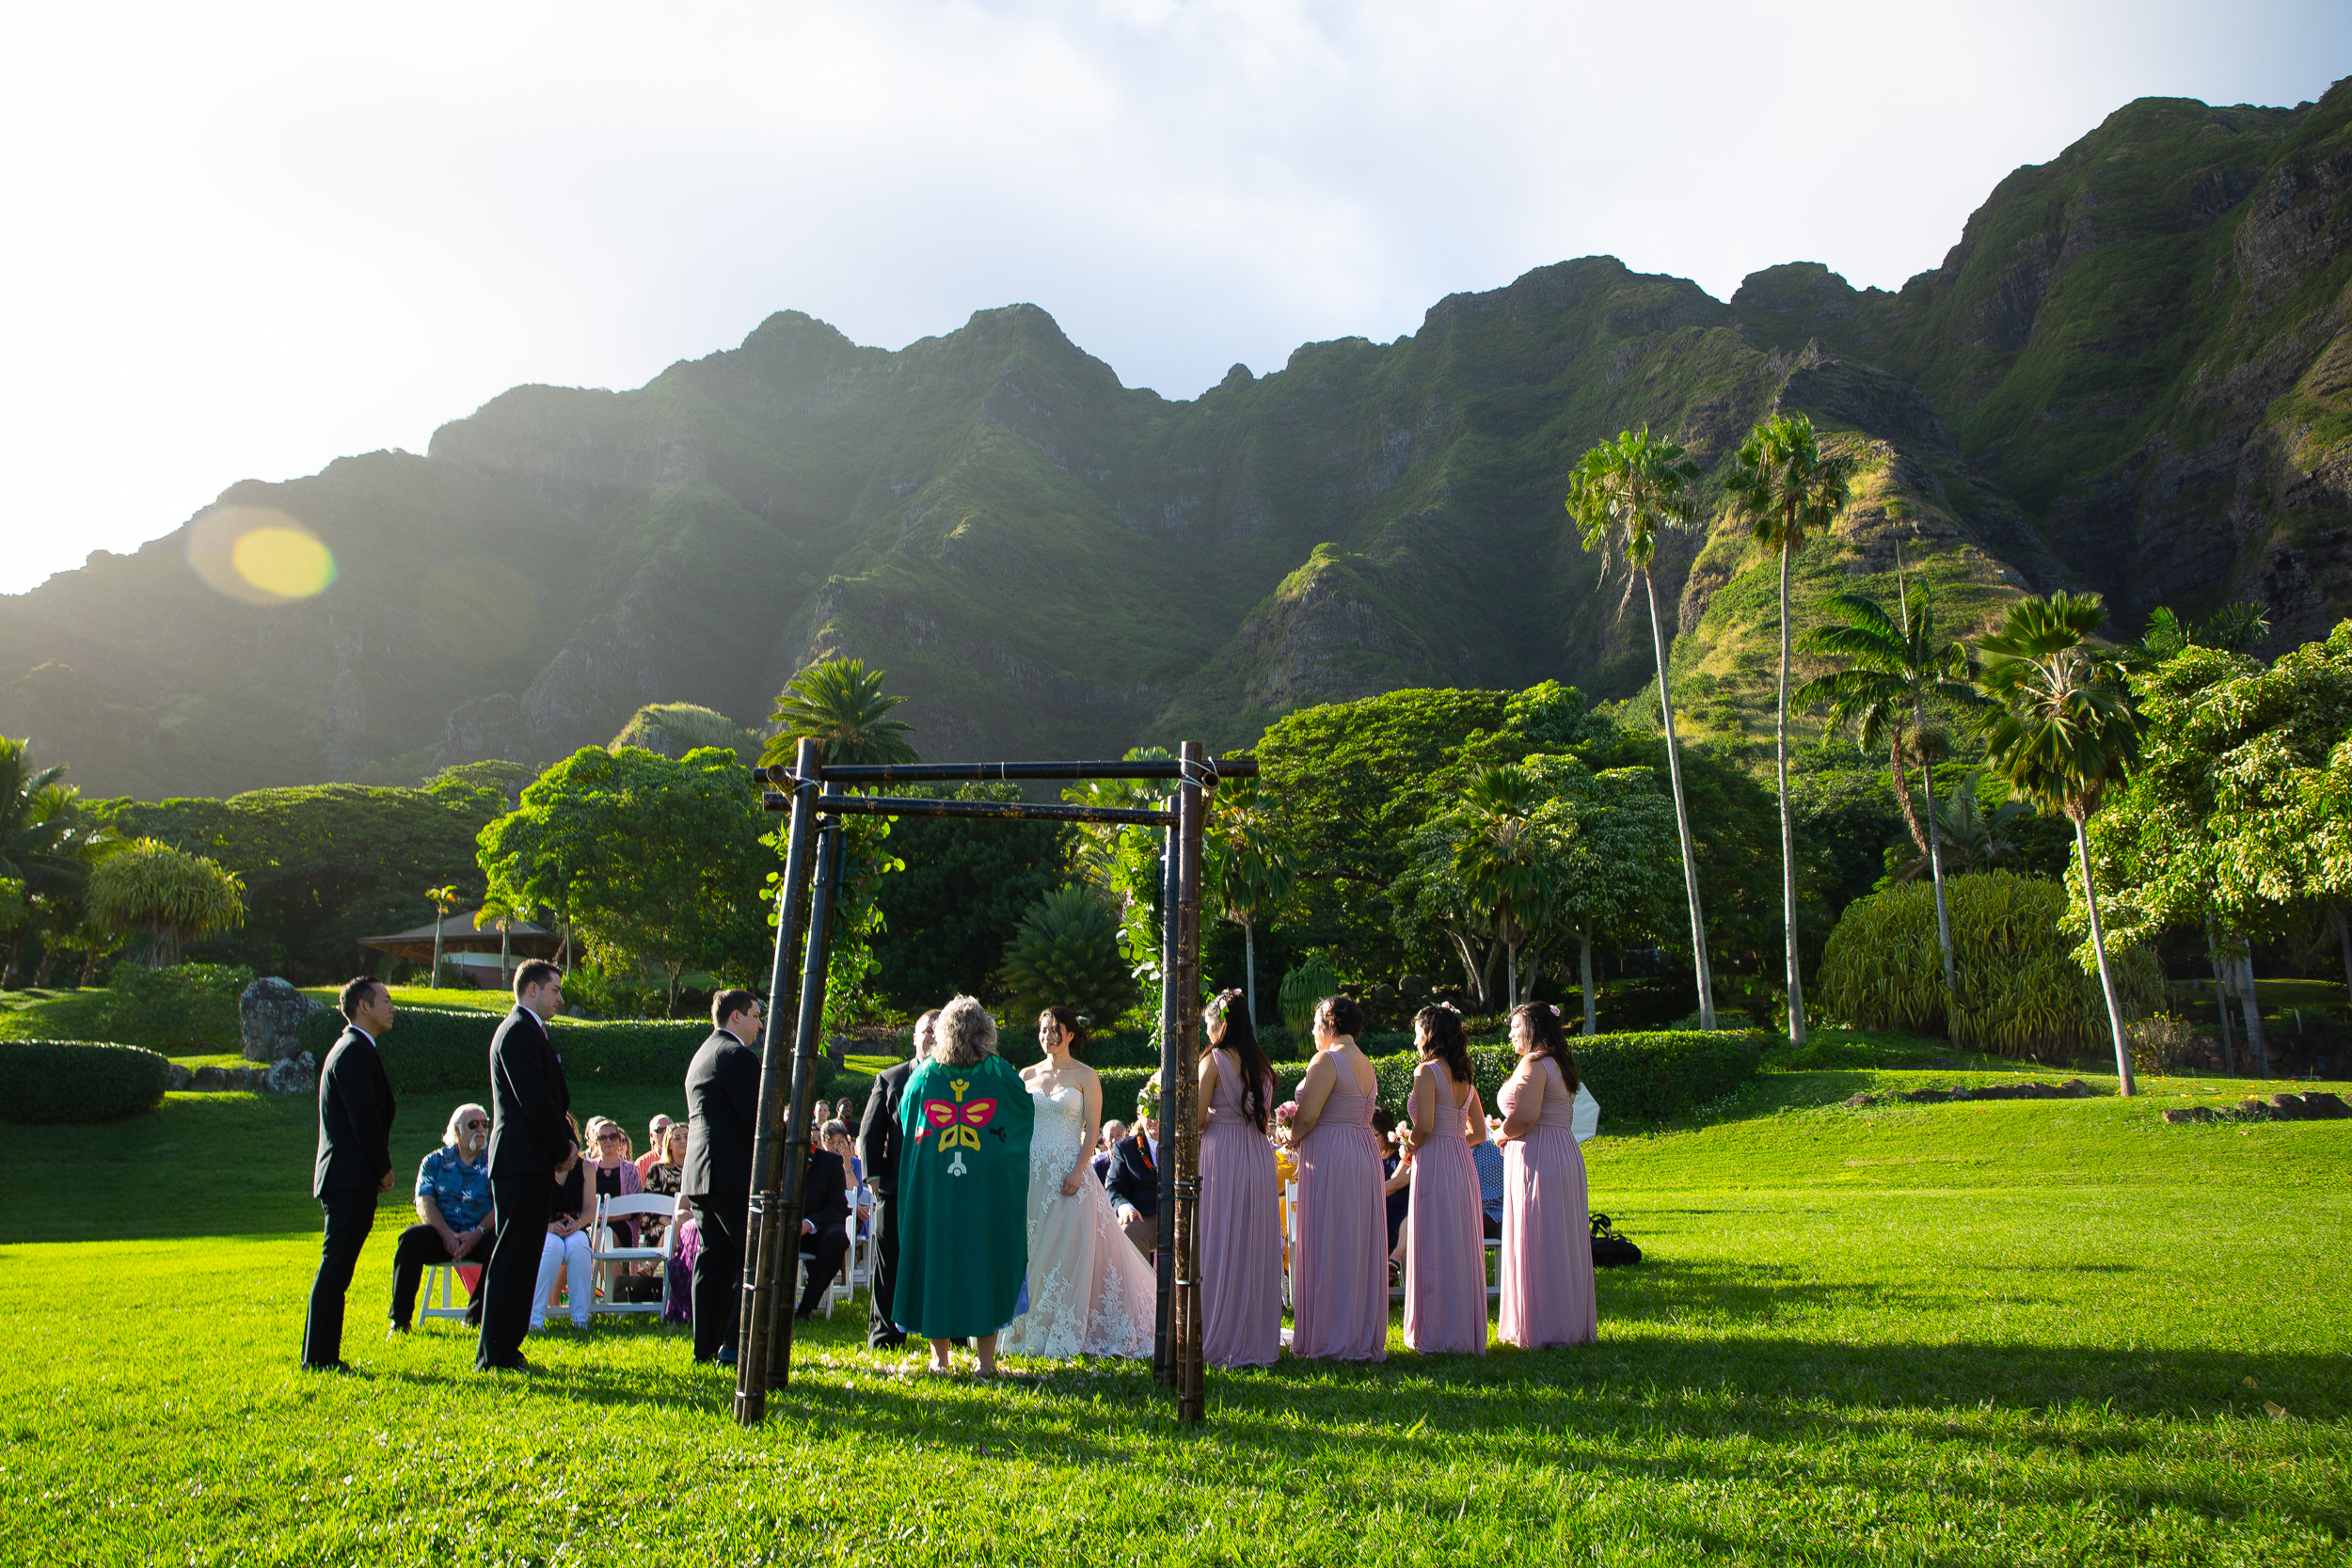 Kualoa Ranch Wedding in Hawaii -46.jpg